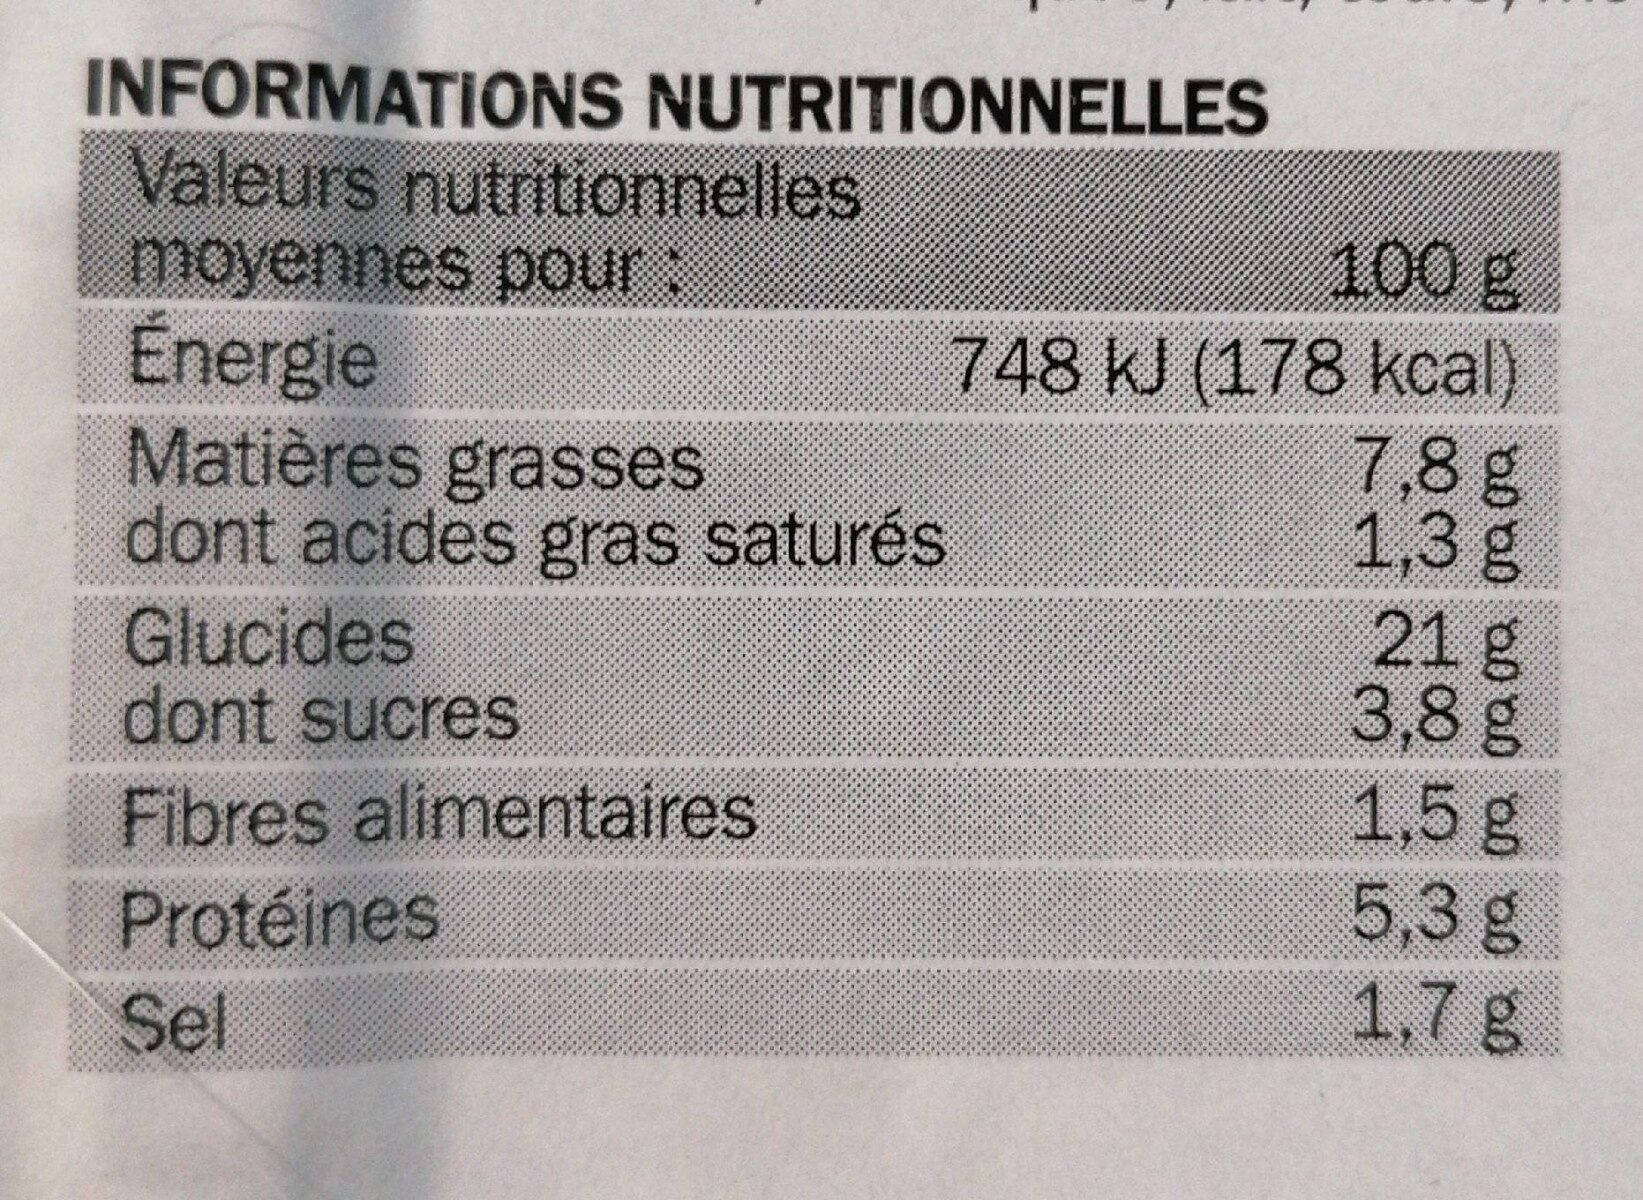 Nems au poulet x4 - Nutrition facts - fr